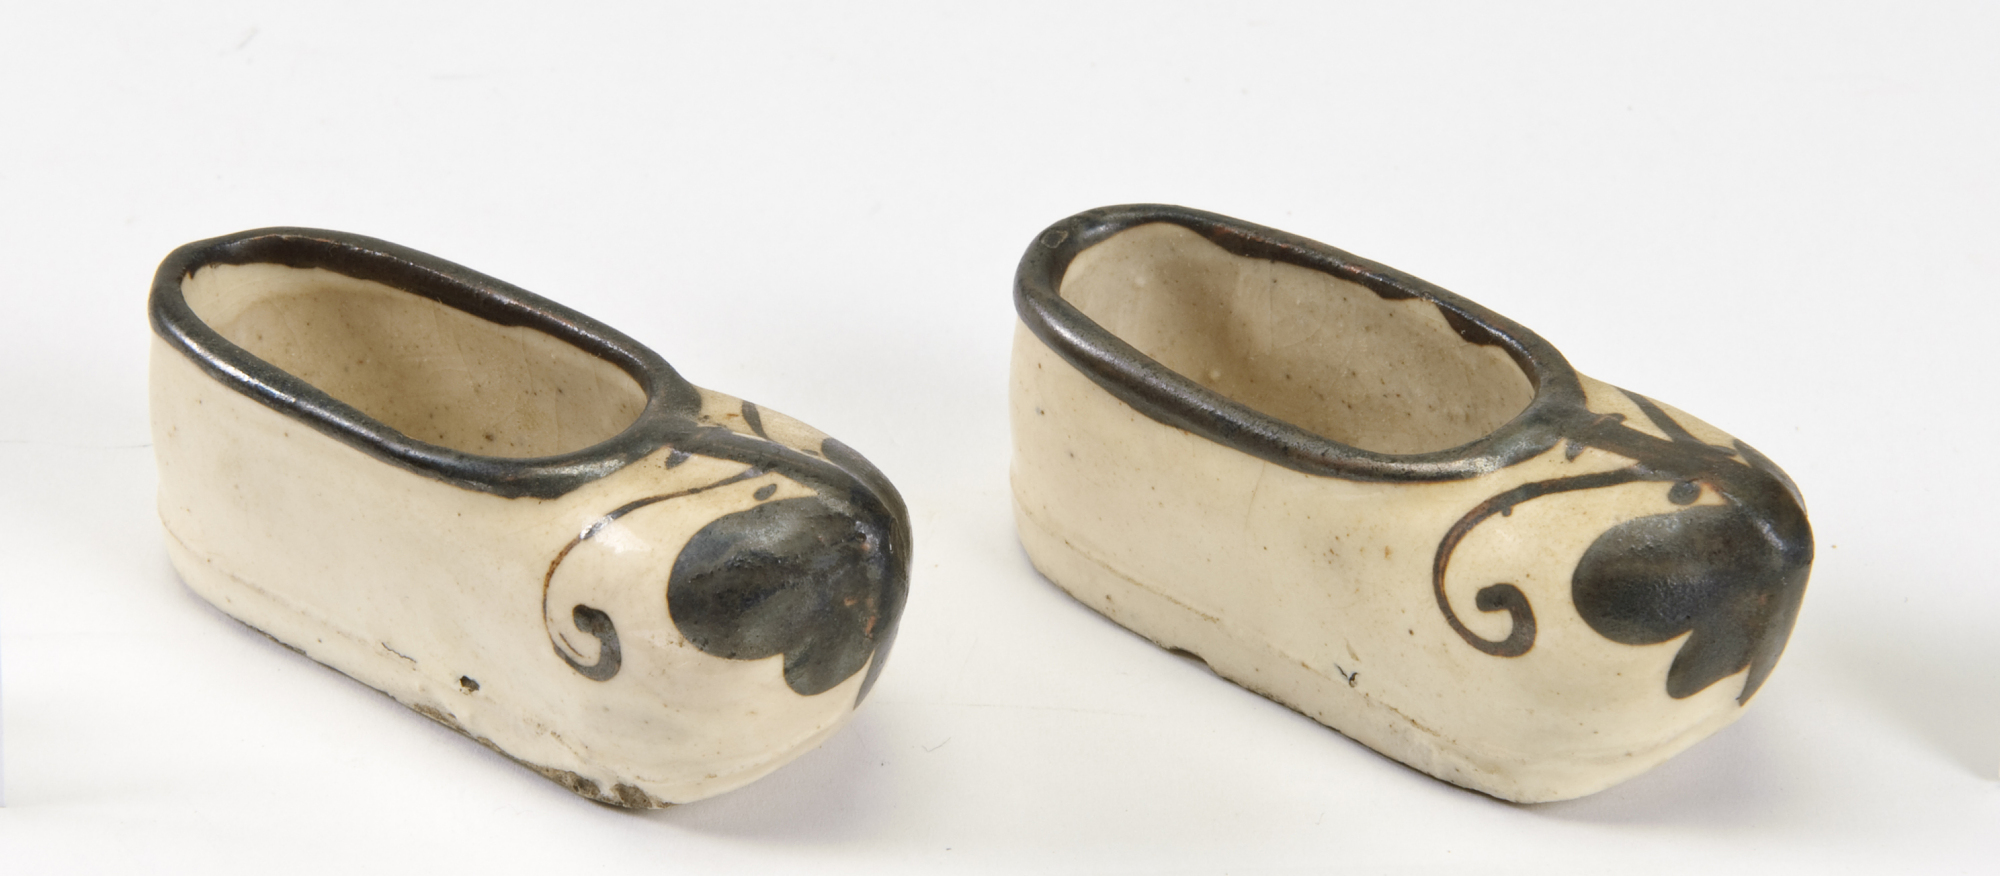 images for Model of a pair of shoes